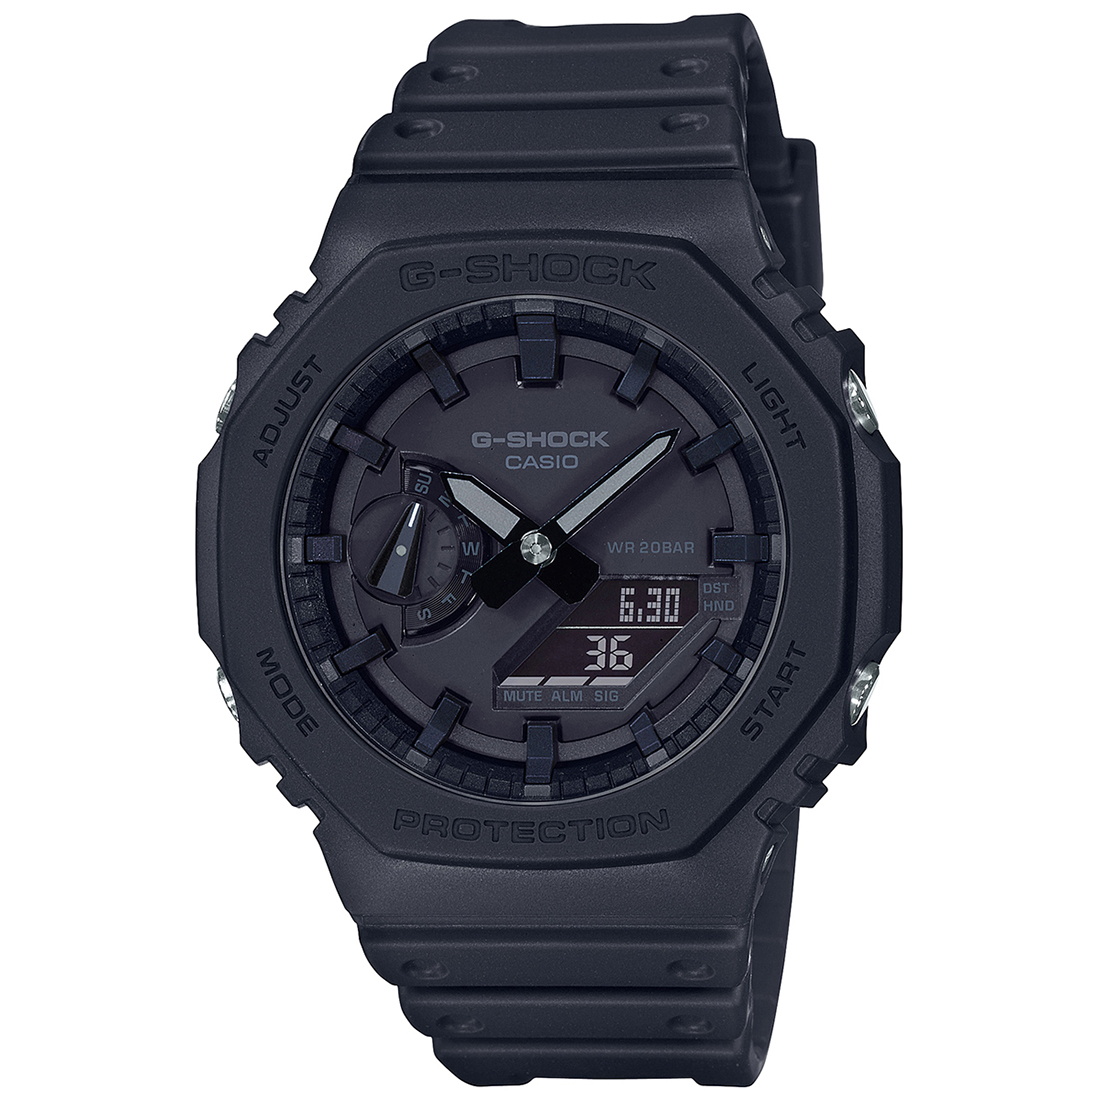 Casio G-Shock GA-2100-1A1DR (G987) Carbon Core Guard Men's Watch-G987